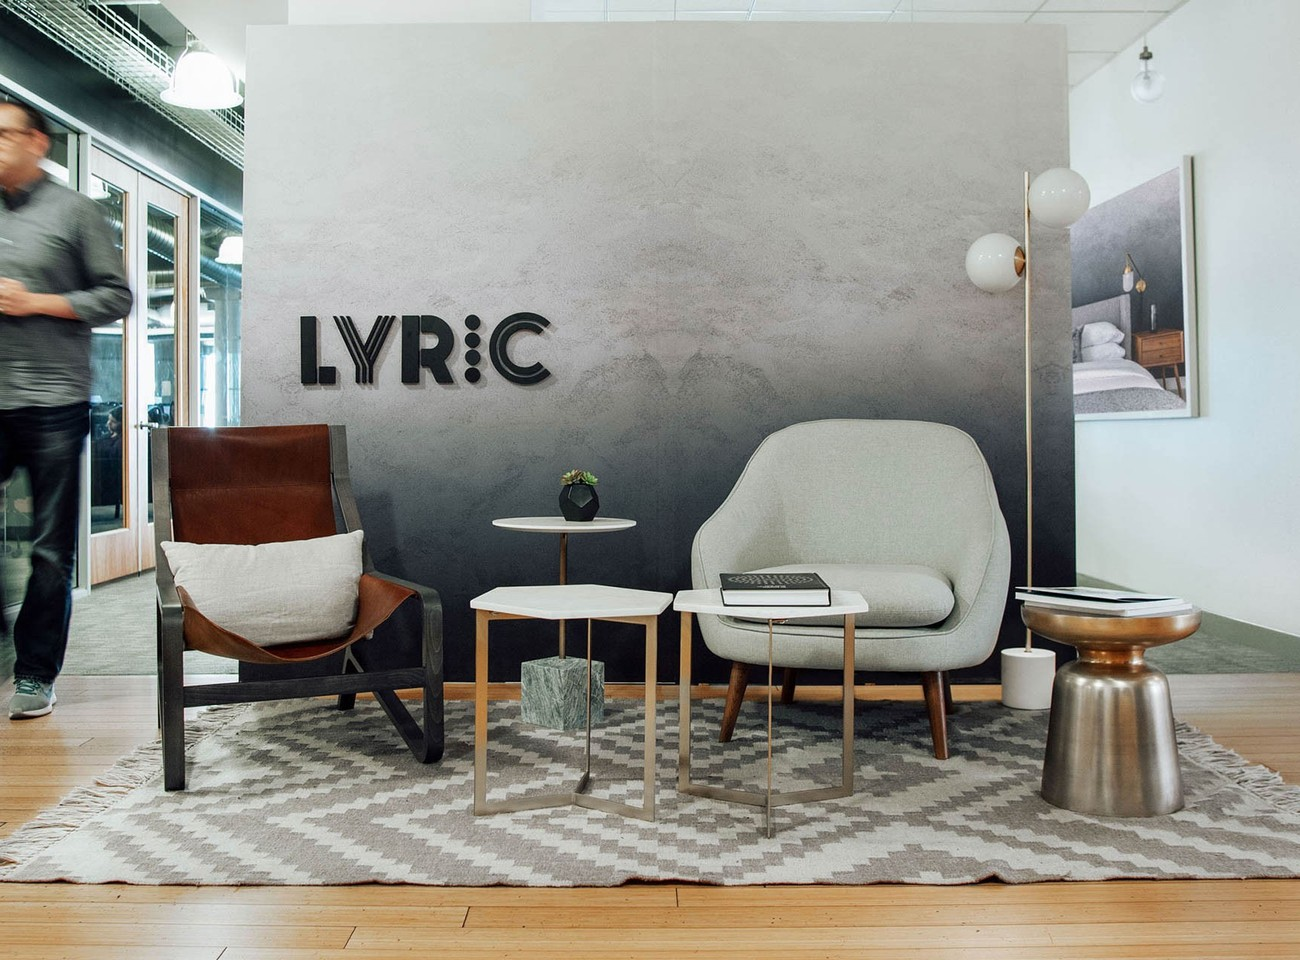 Lyric Careers